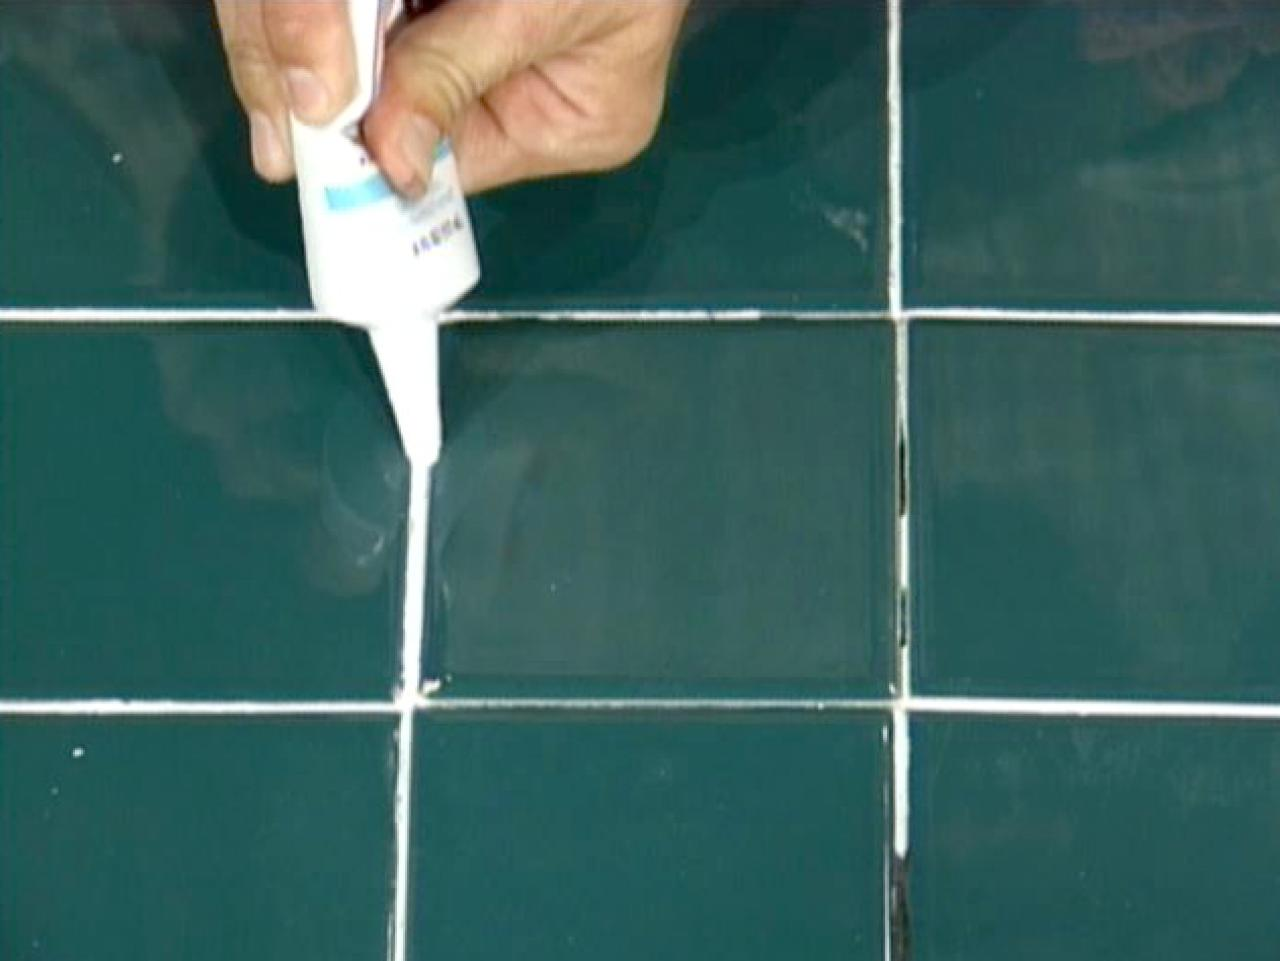 How to Repair Cracked Tiles | how-tos | DIY